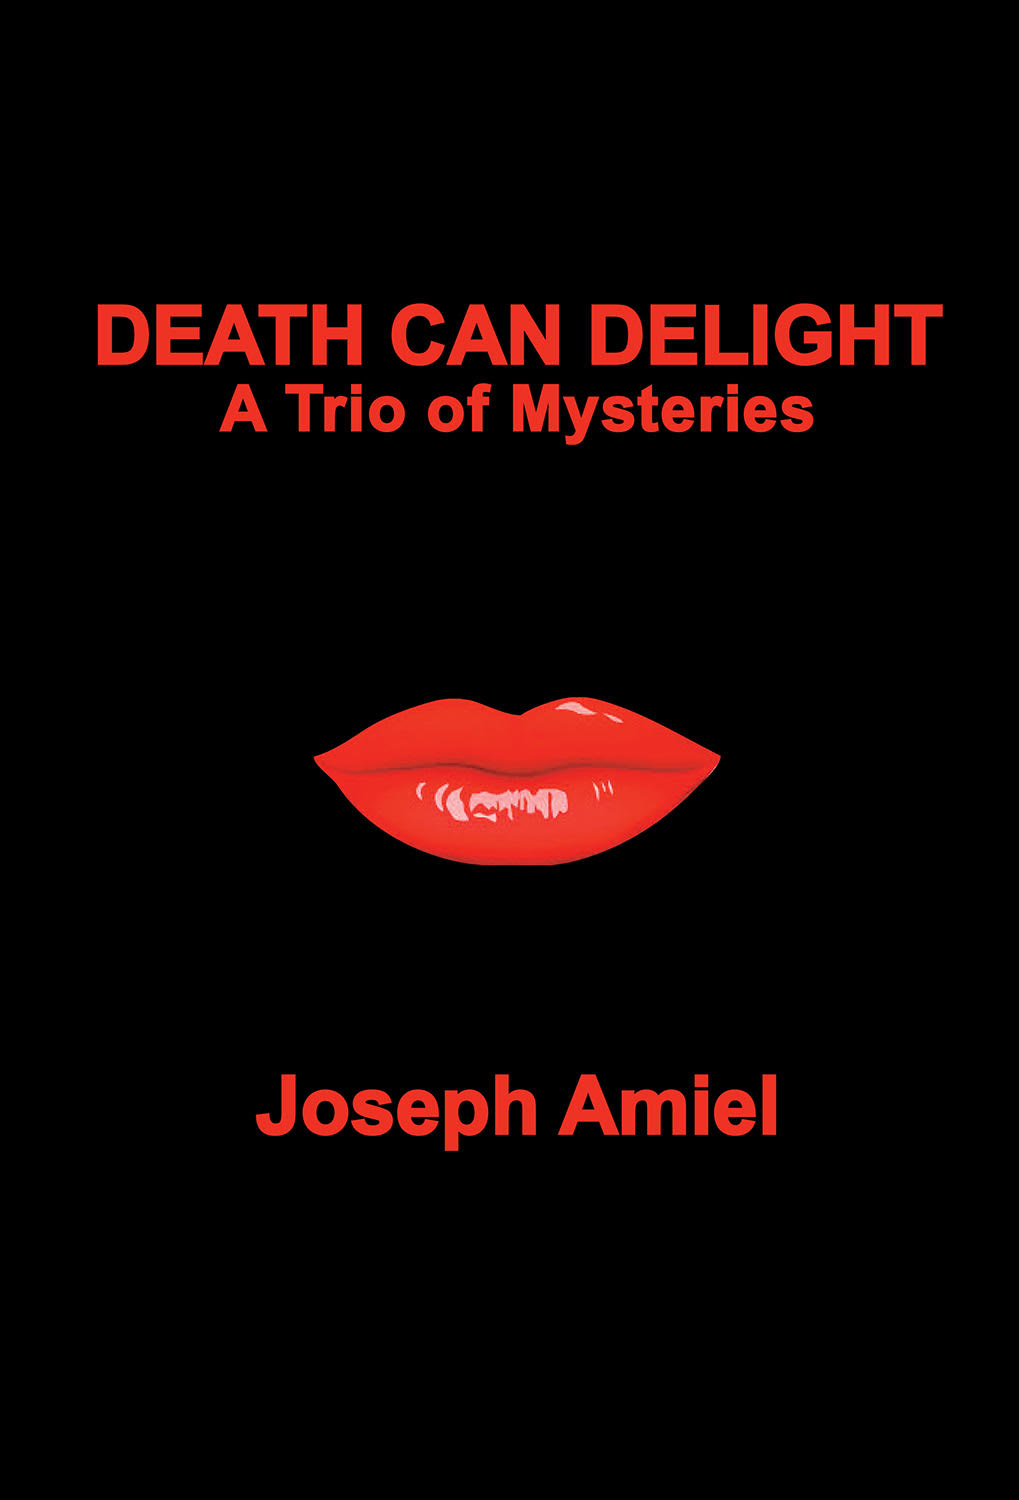 Death Can Delight: A Trio of Mysteries by Joseph Amiel Review